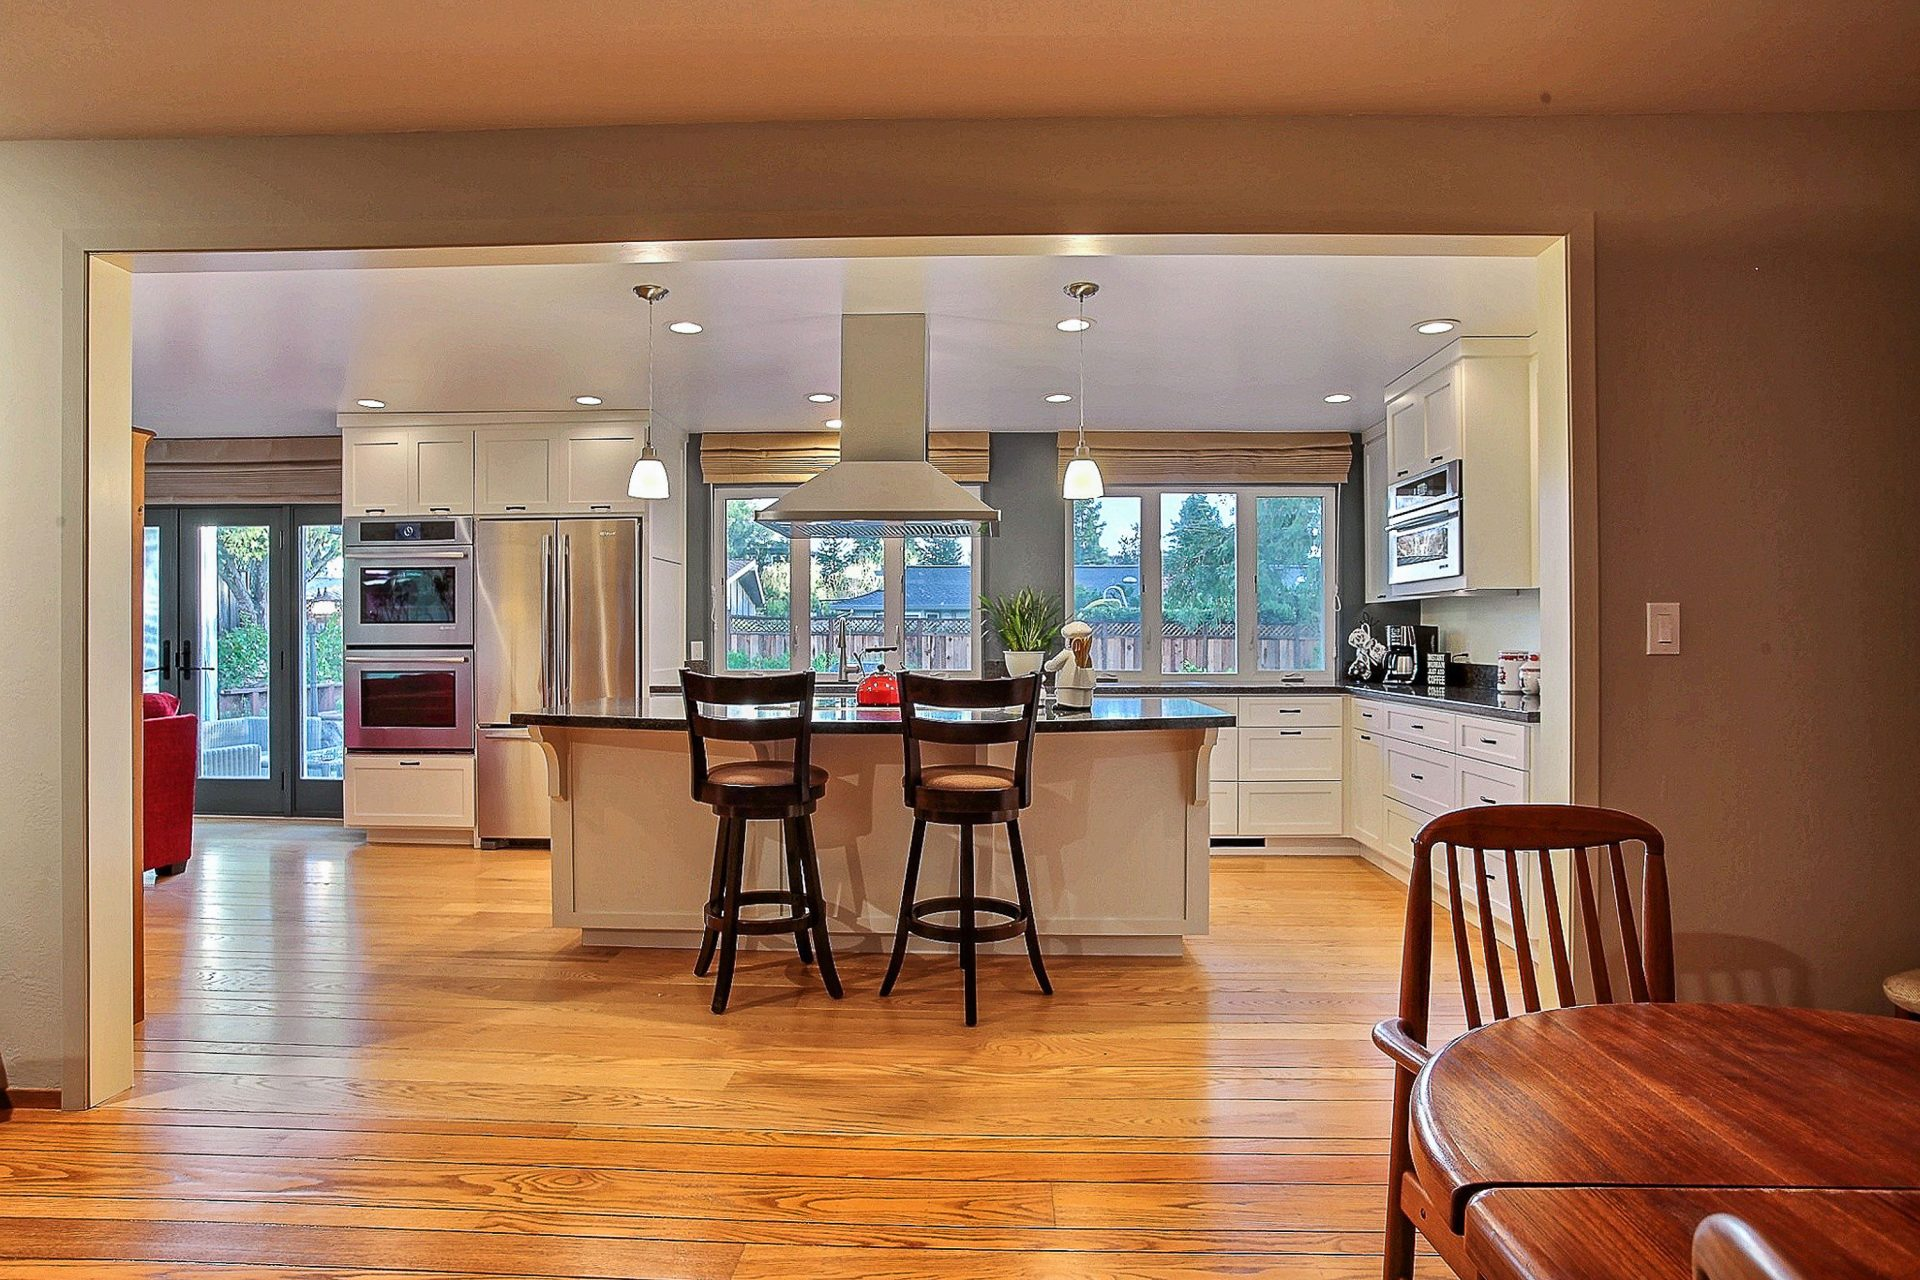 certified kitchen designer home design and decorating. why hire a